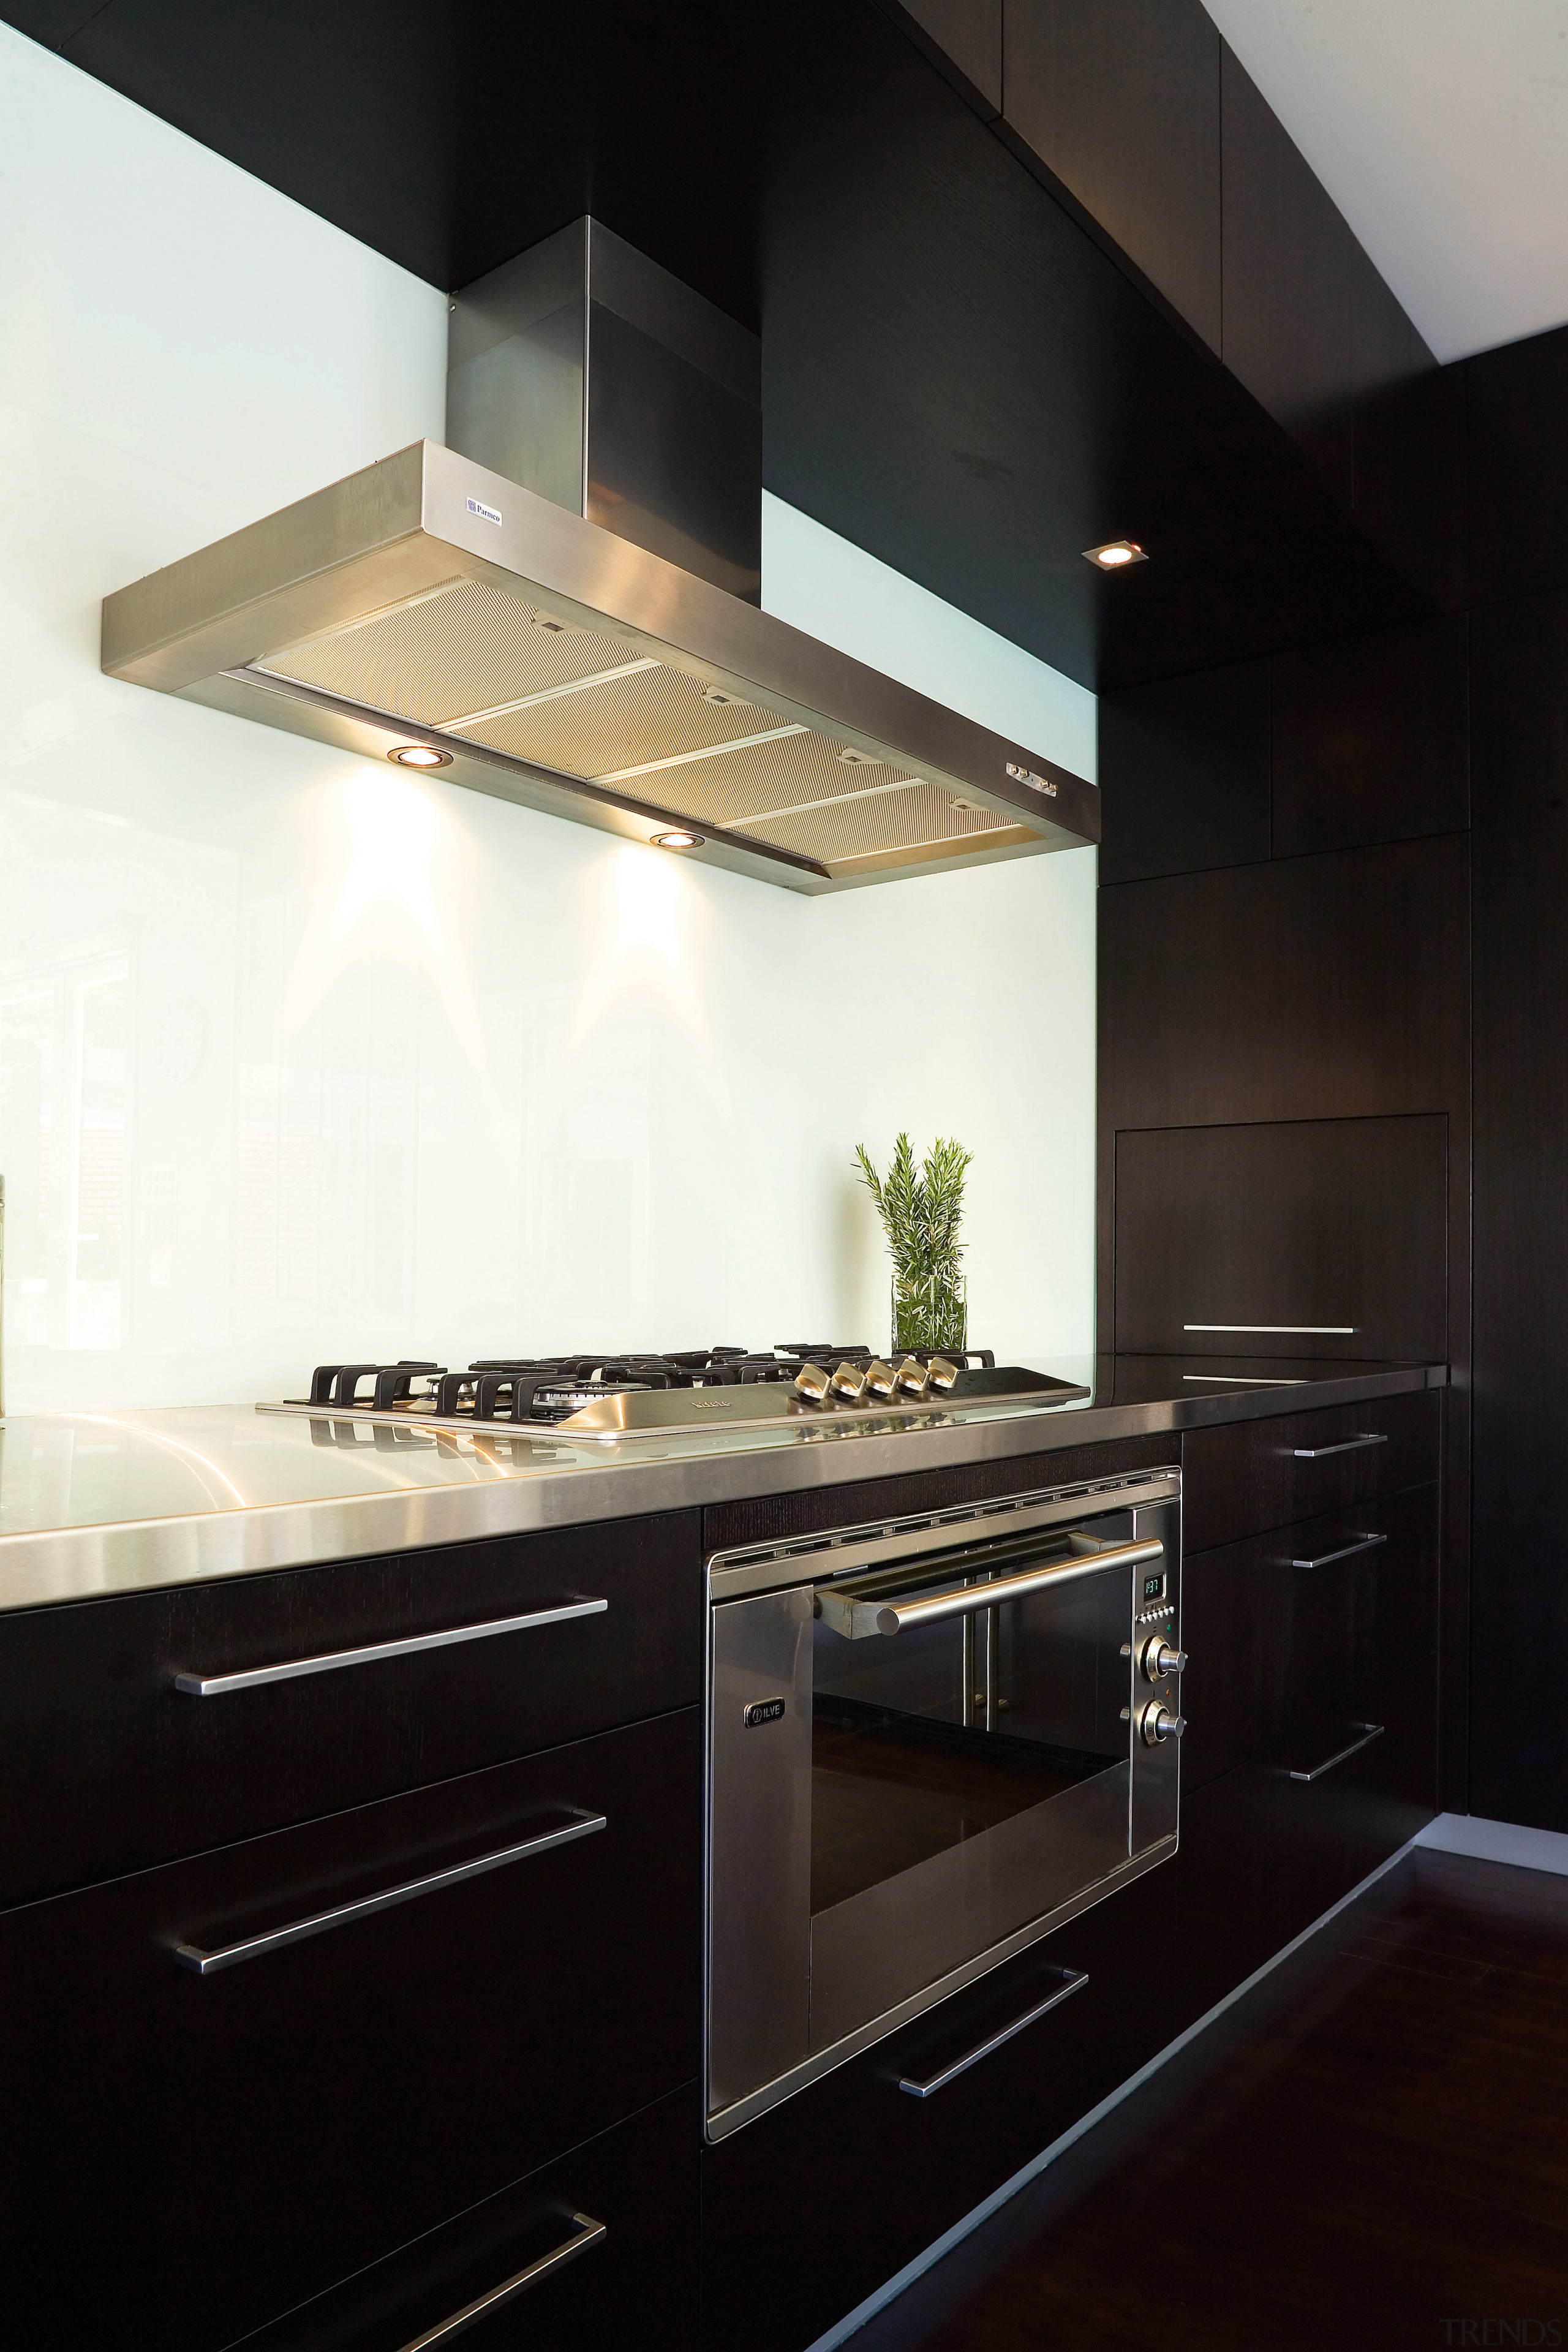 The kitchen has drawers instead of cupboards around cabinetry, countertop, cuisine classique, home appliance, interior design, kitchen, kitchen stove, under cabinet lighting, black, white